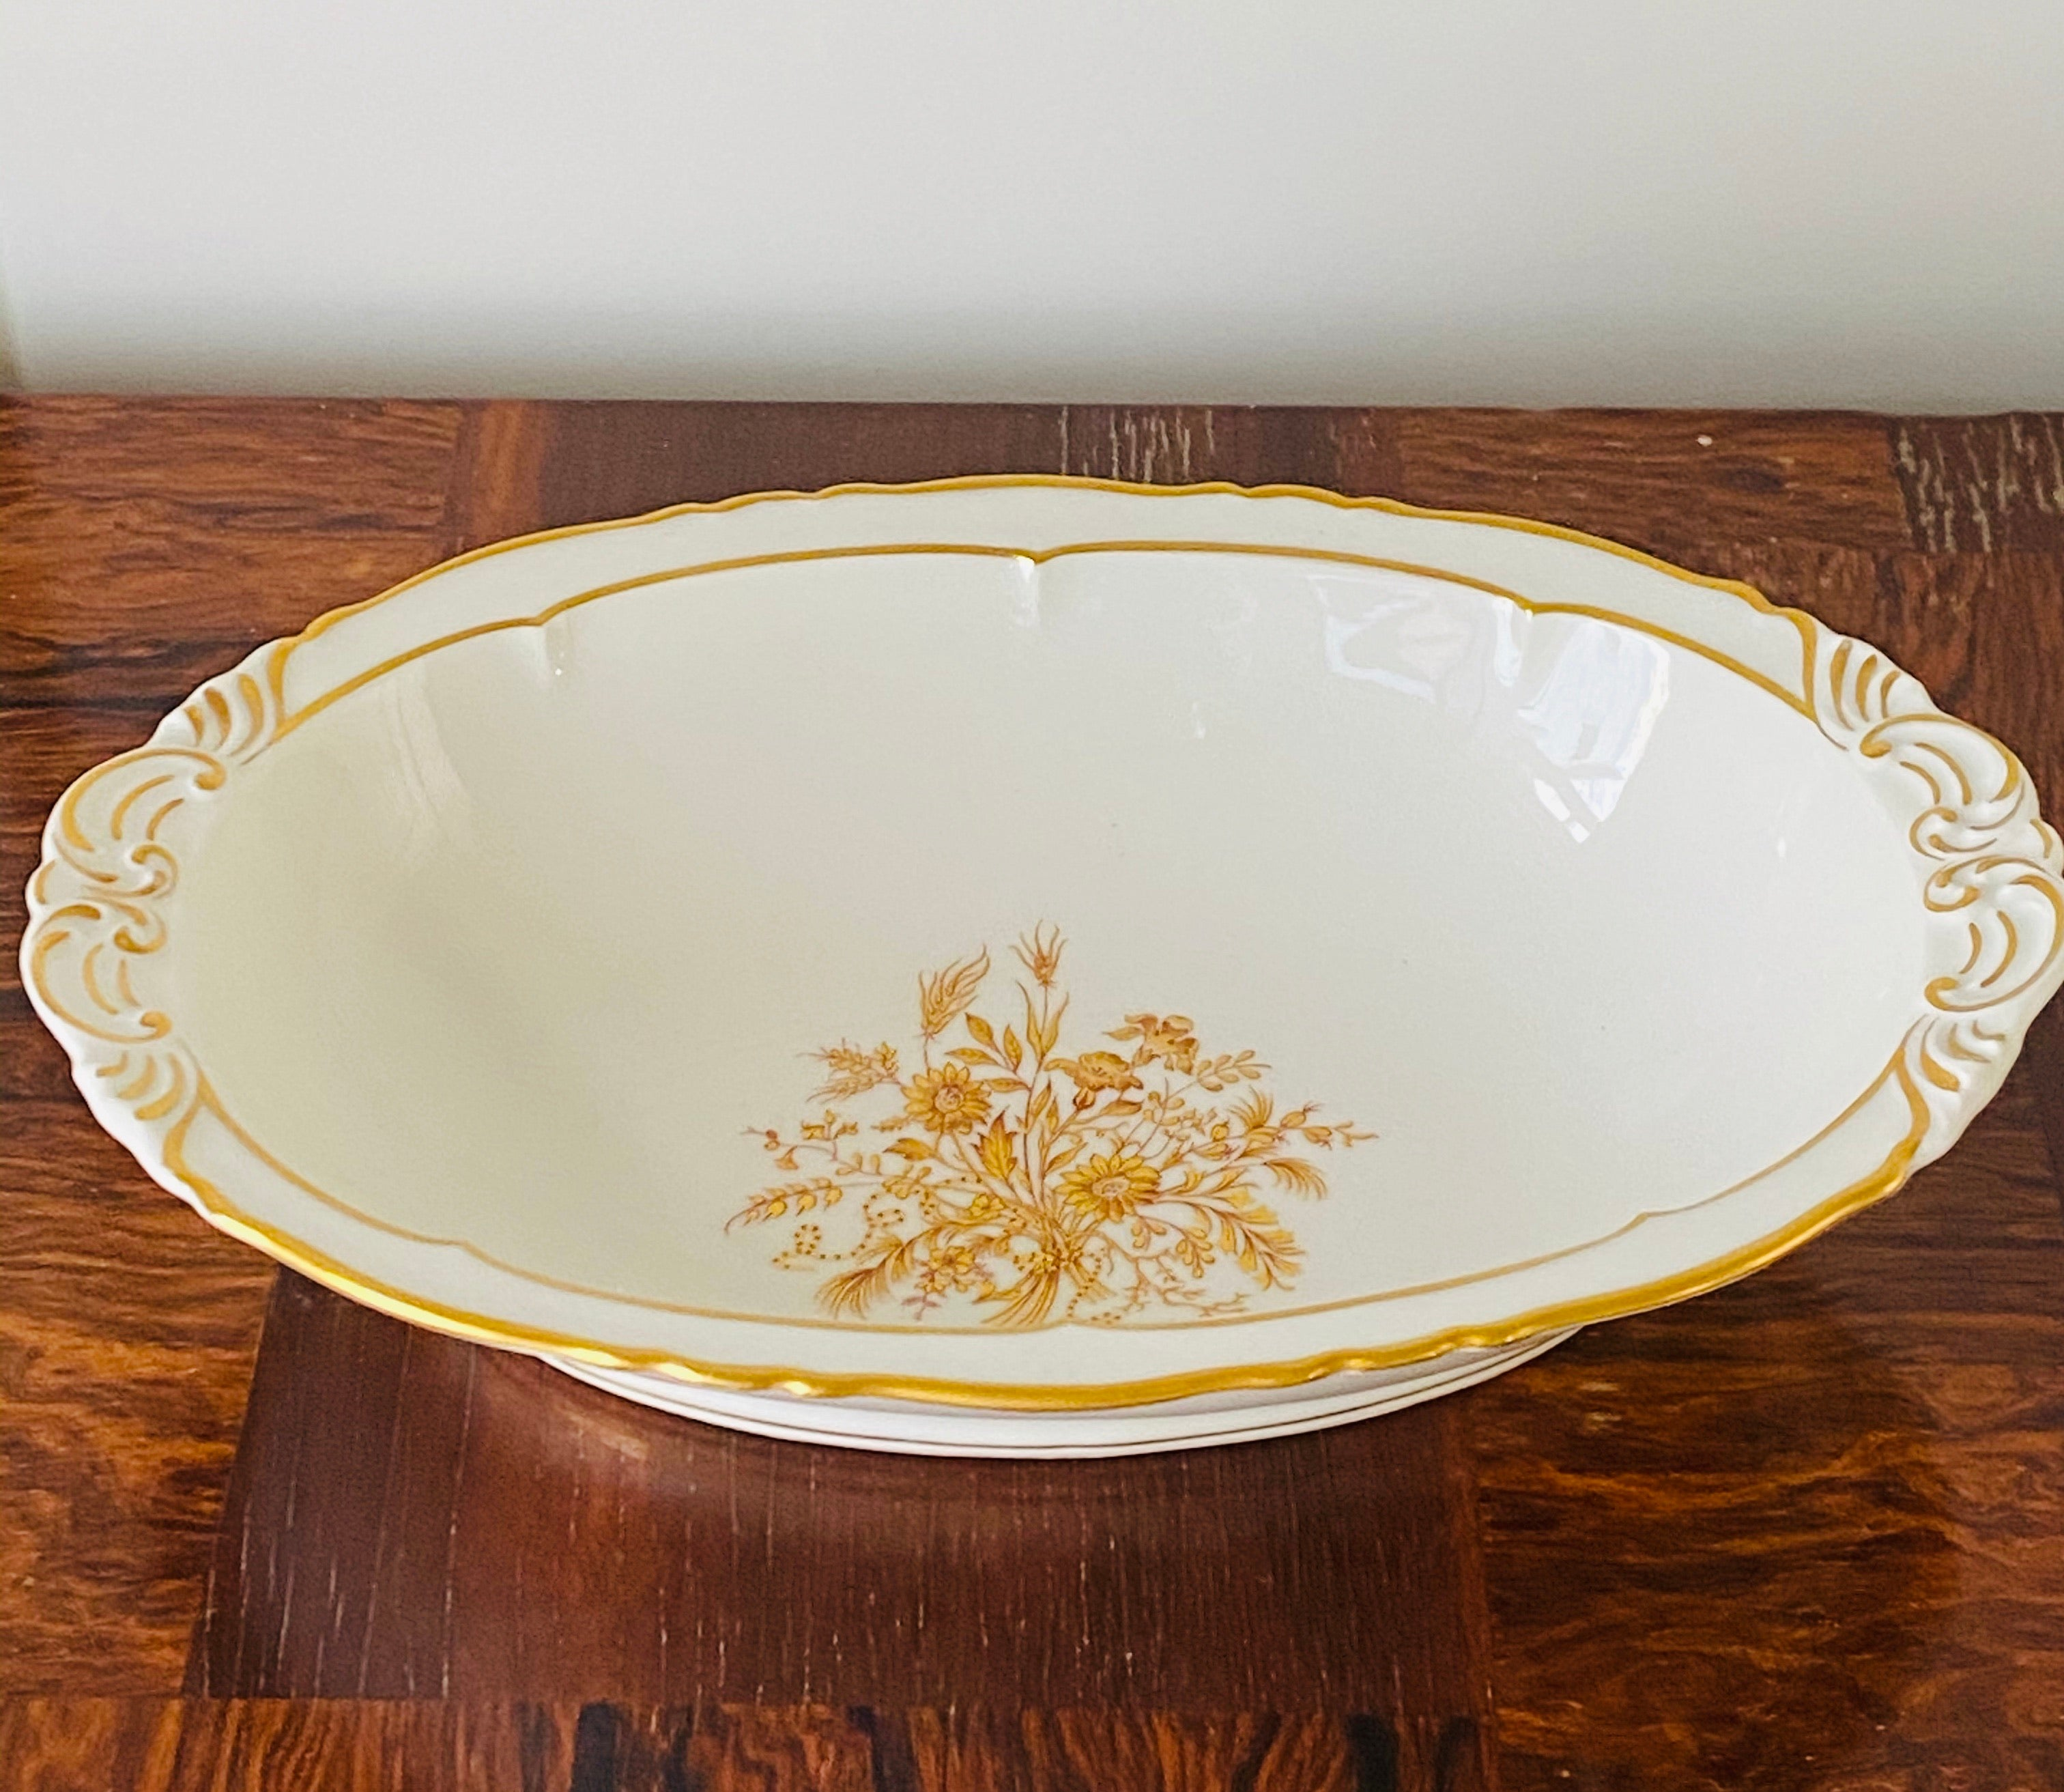 Limoges Porcelain Serving Bowl